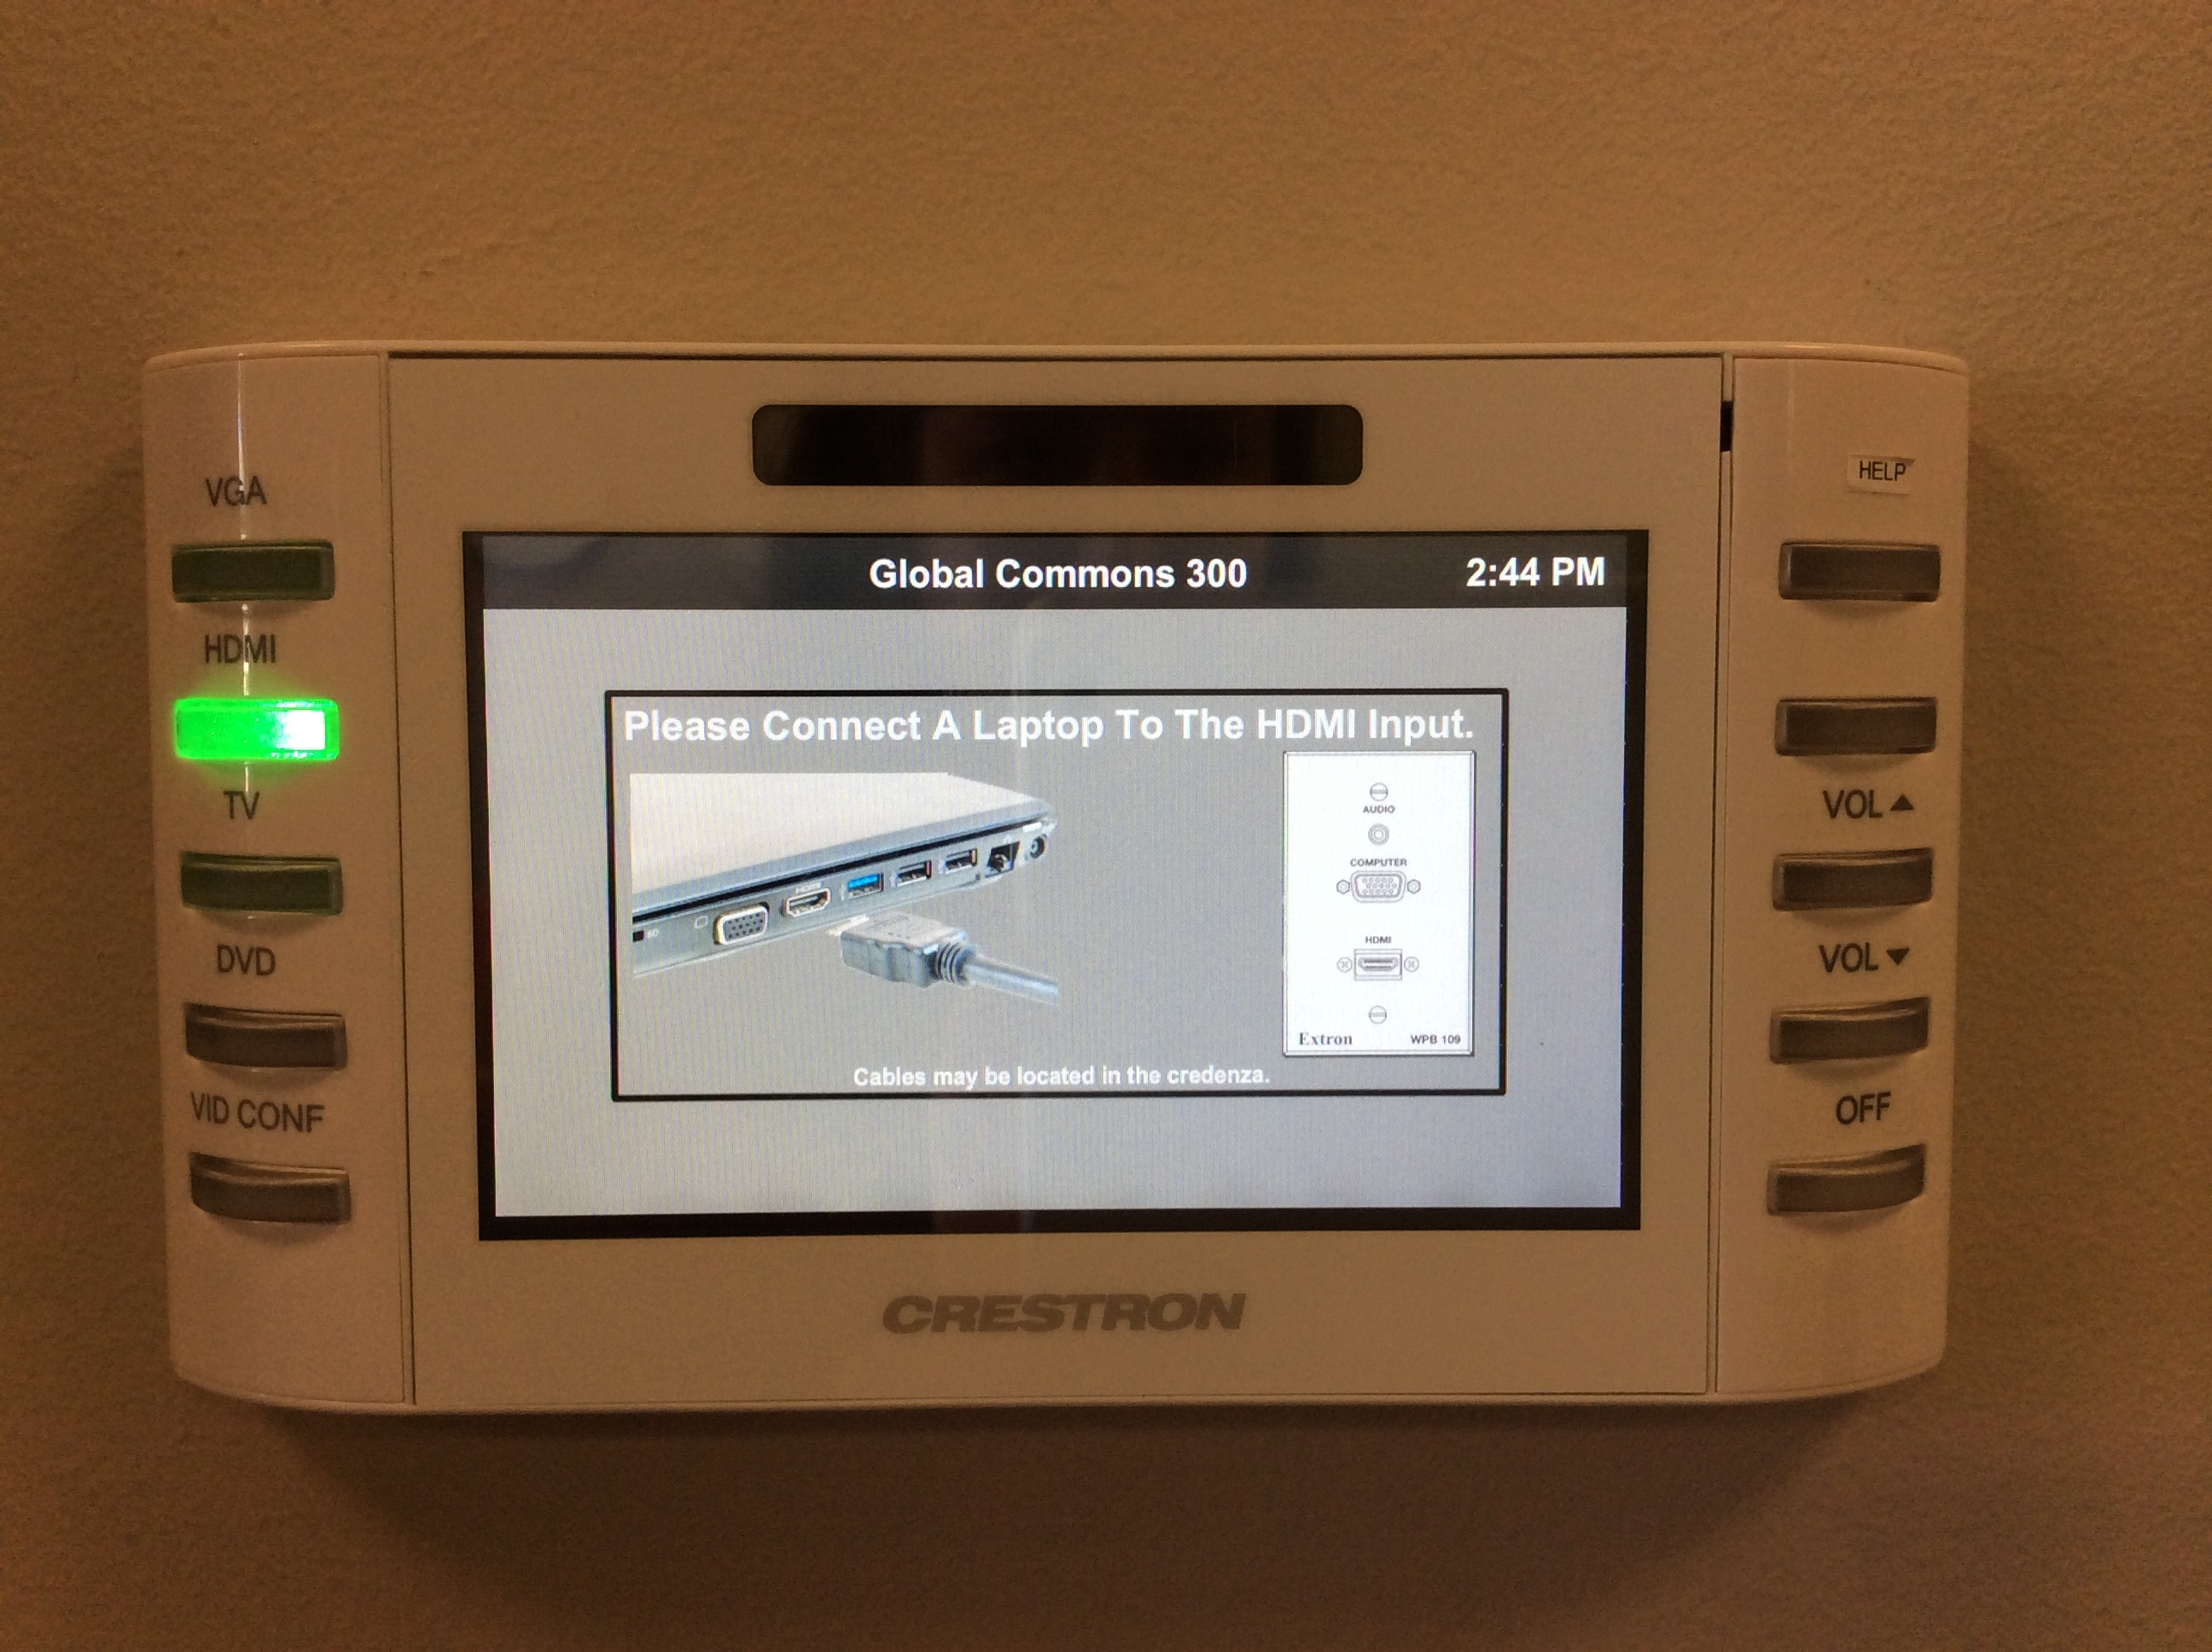 Photo of crestron control touch panel with hdmi option active